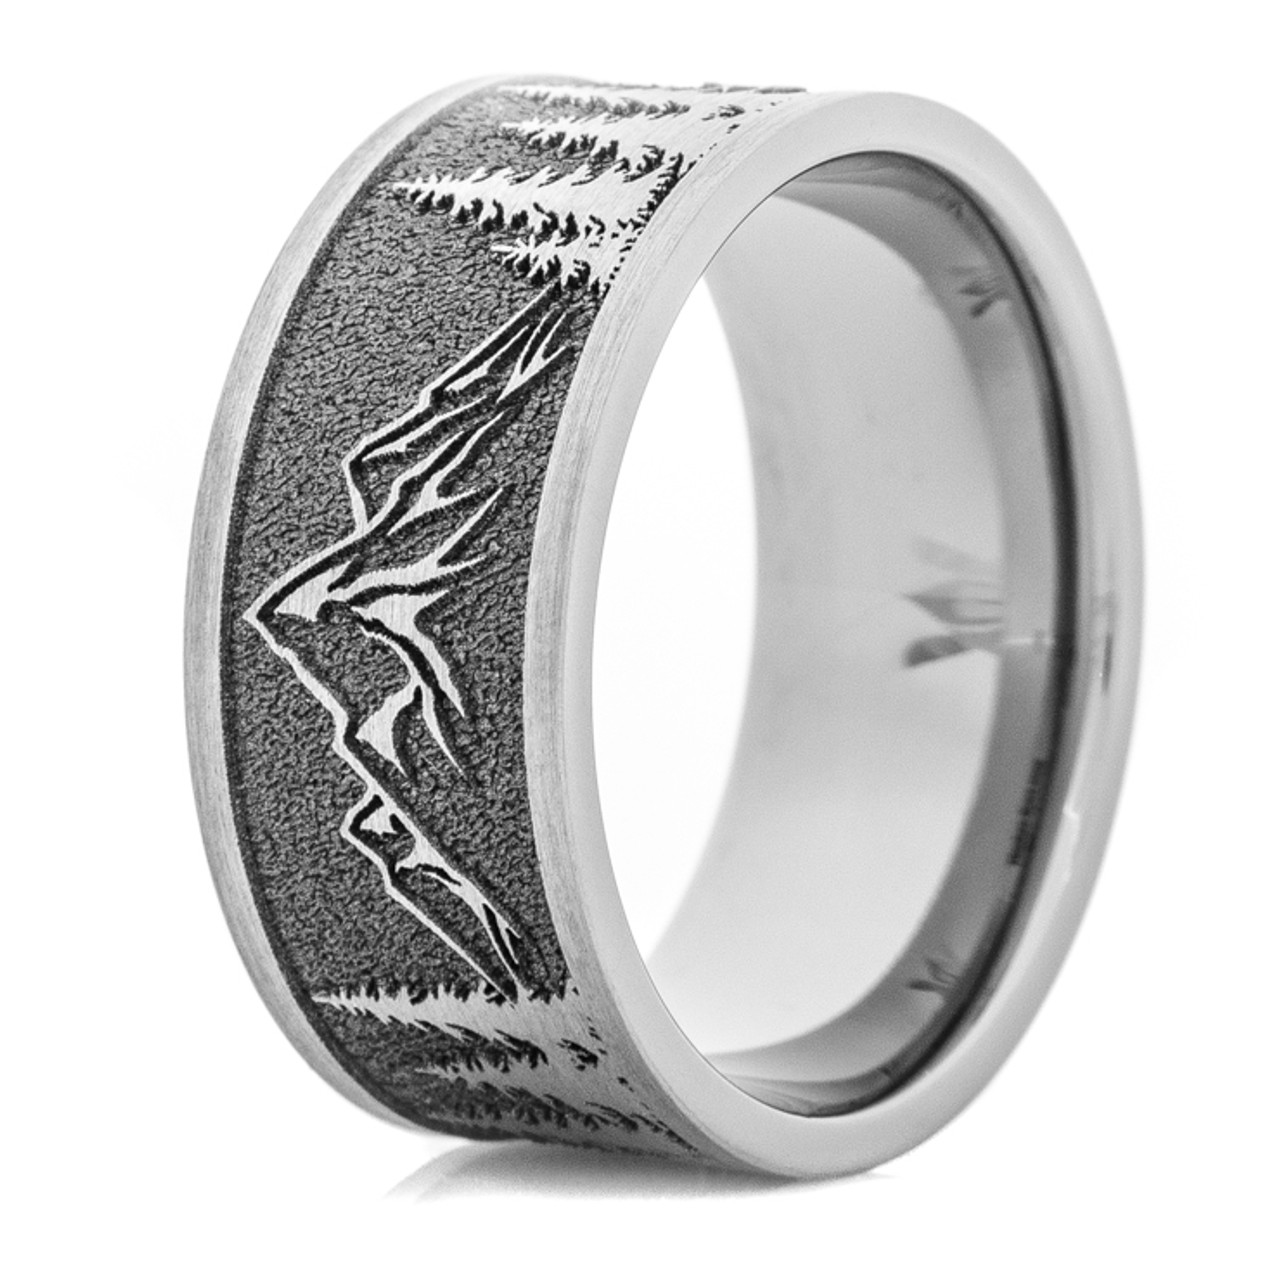 ring unique s cz new outdoor men g eternity titanium antler band item bands mens carved diamonds with style shardon pure